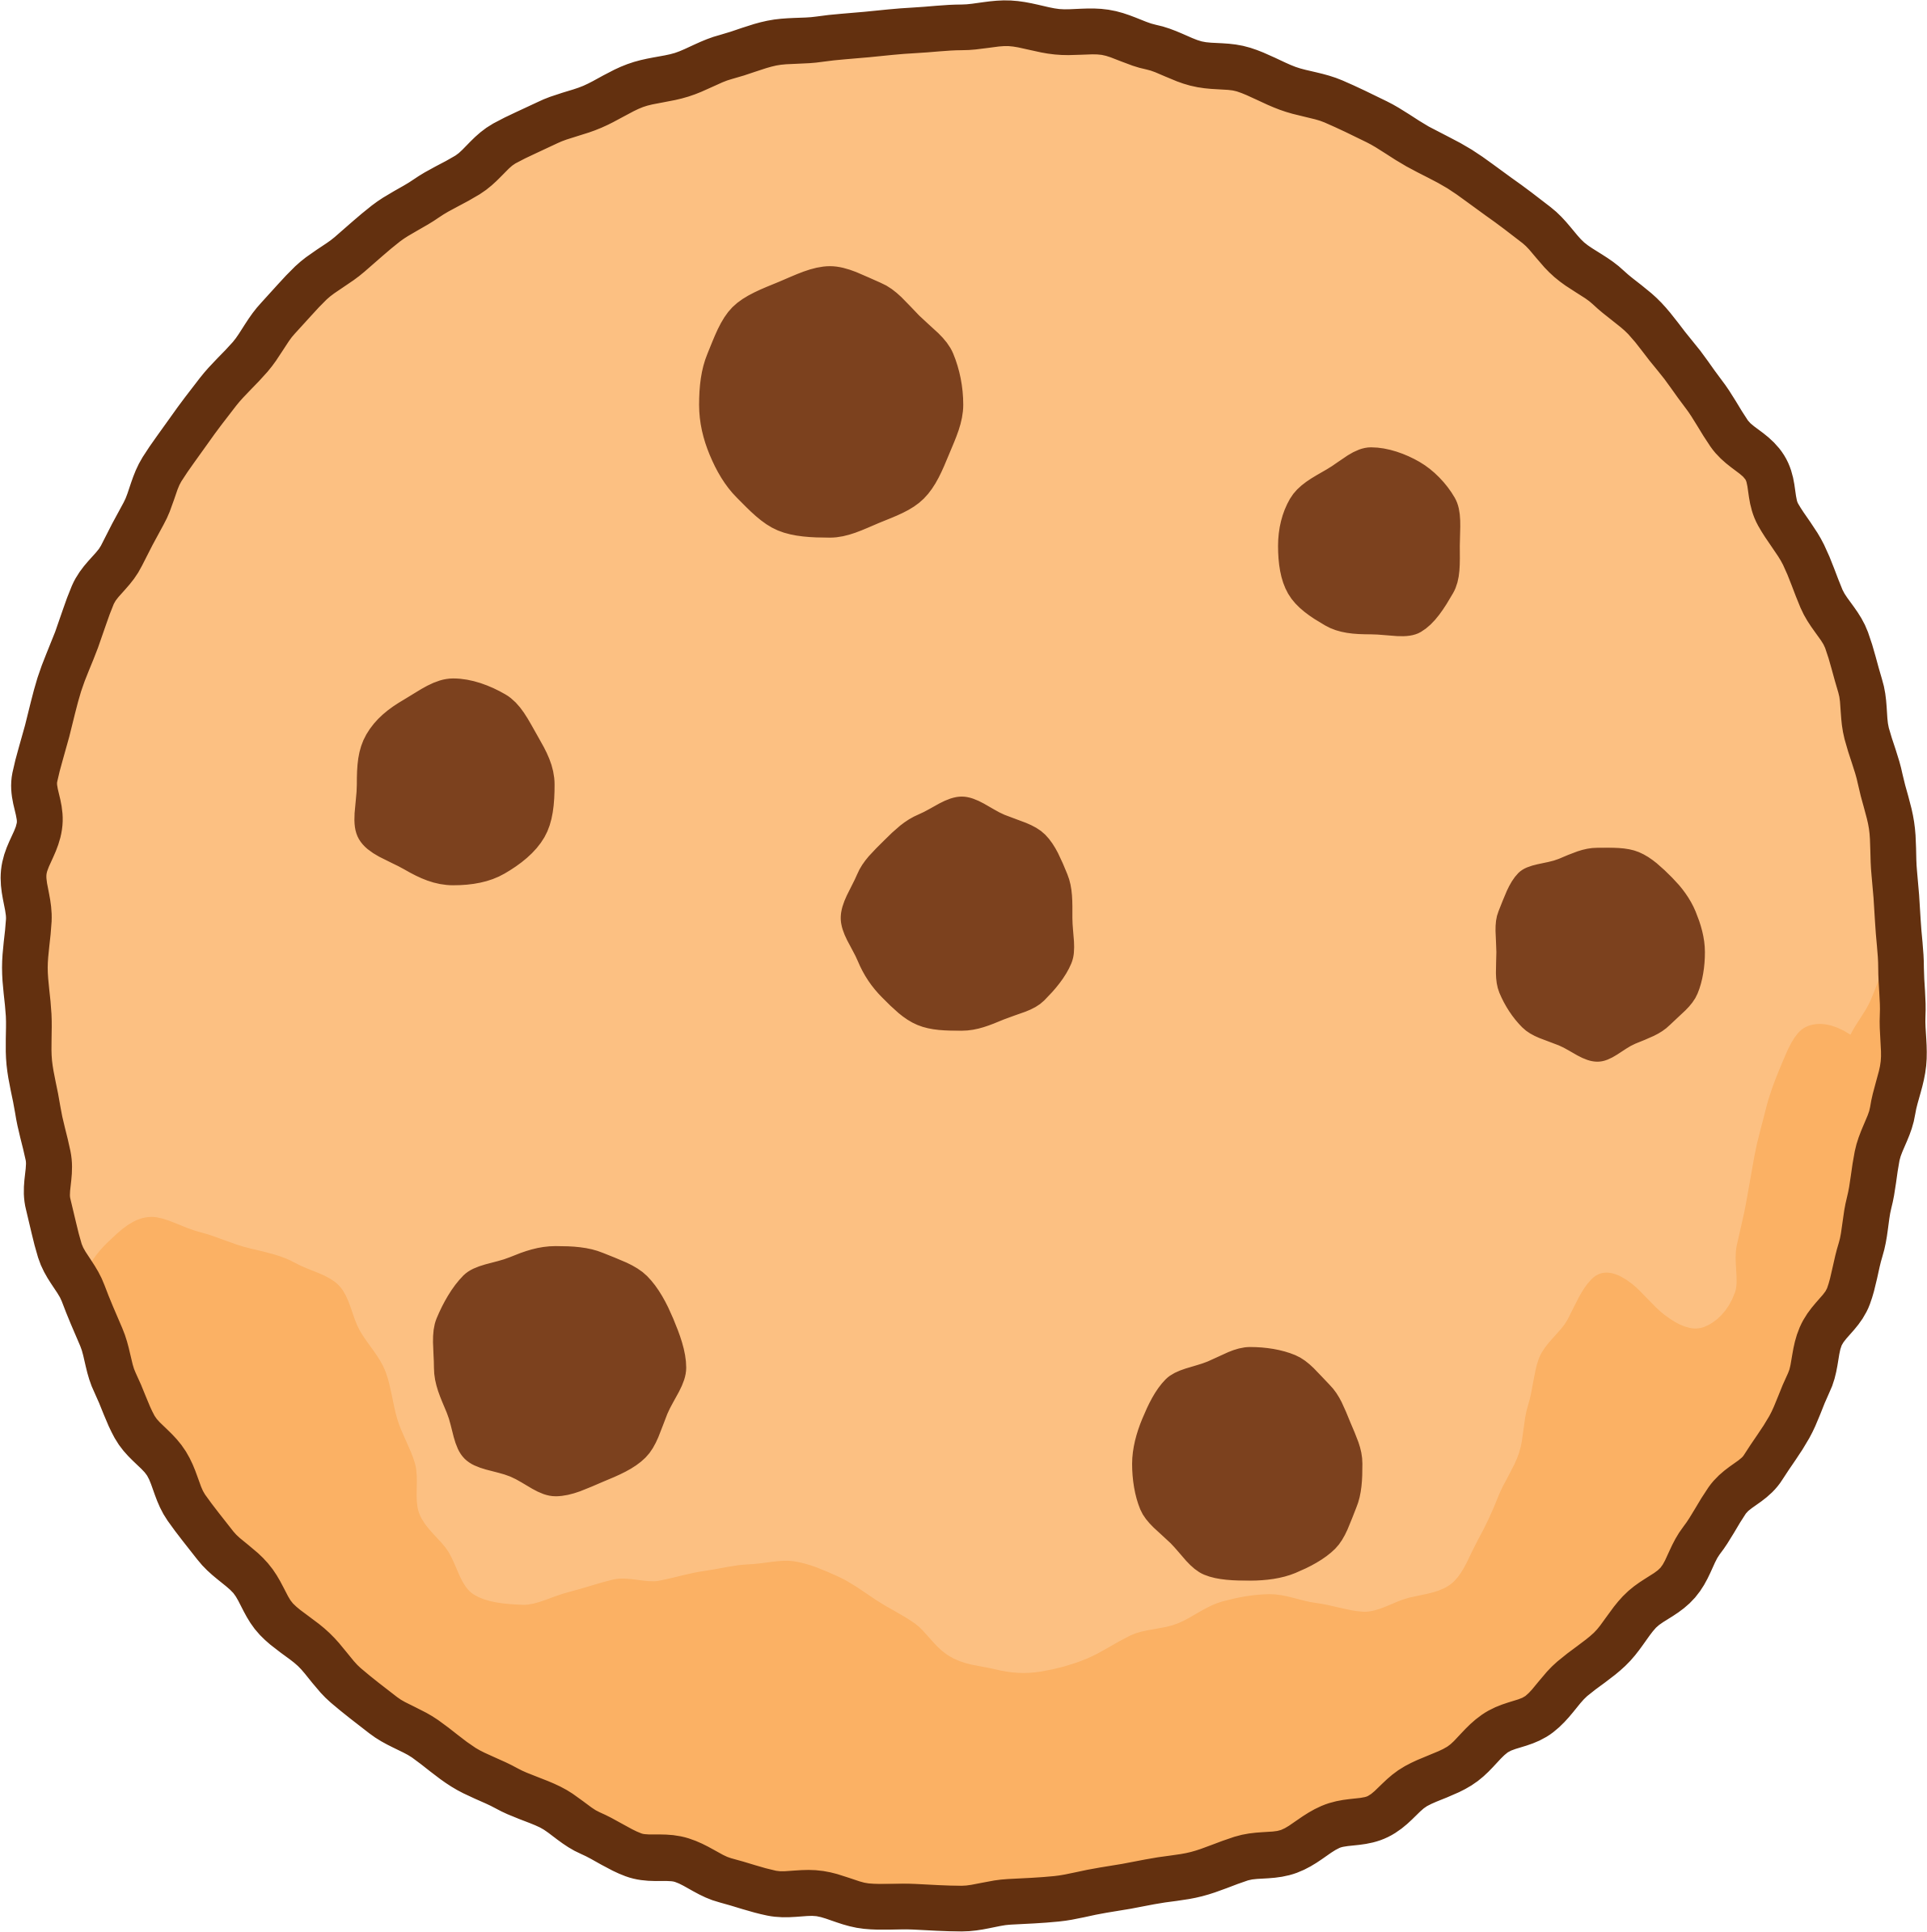 Cookie PNG Transparent Images Background #47942.